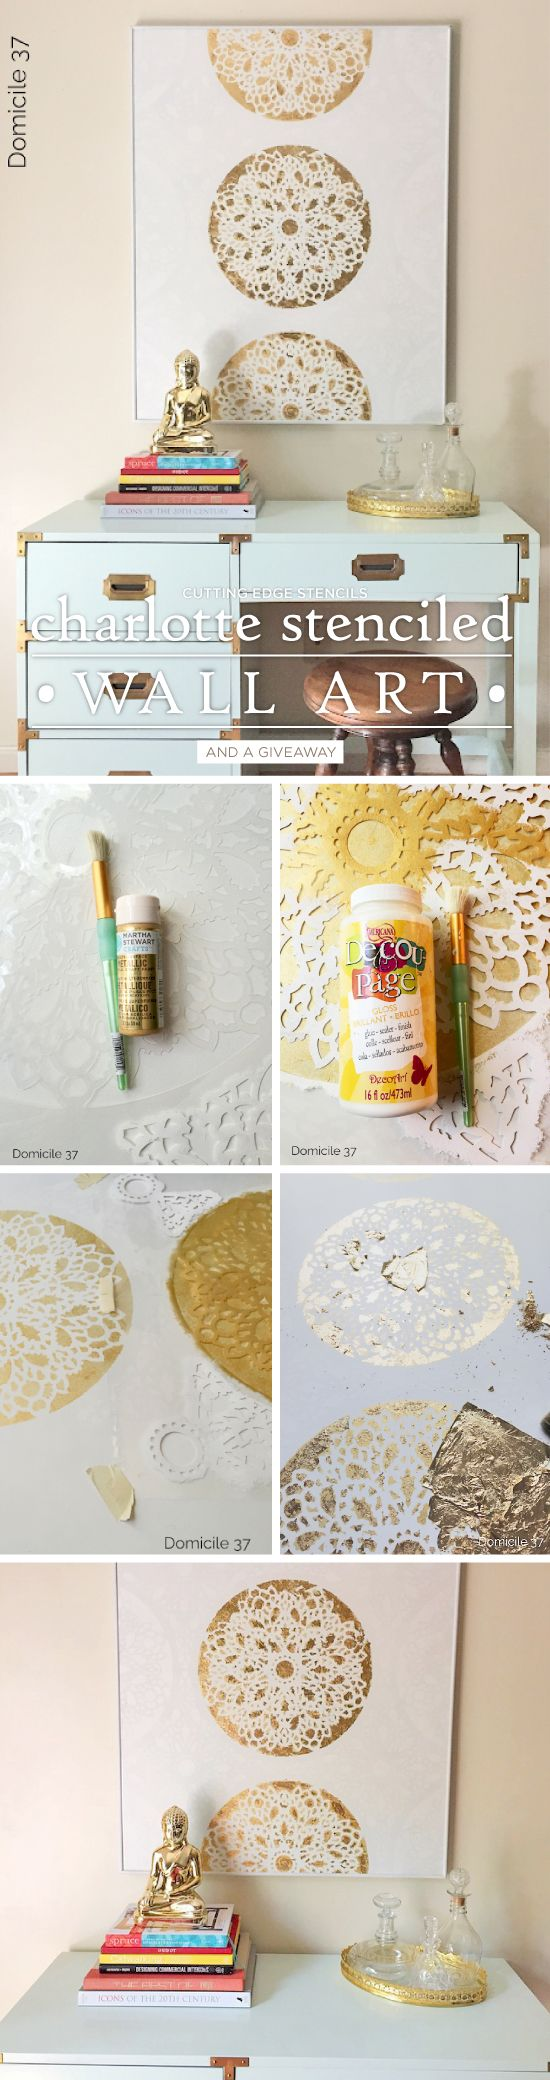 Stenciling Wall Art Using A Lace Stencil Wanddeko Selbstgemacht